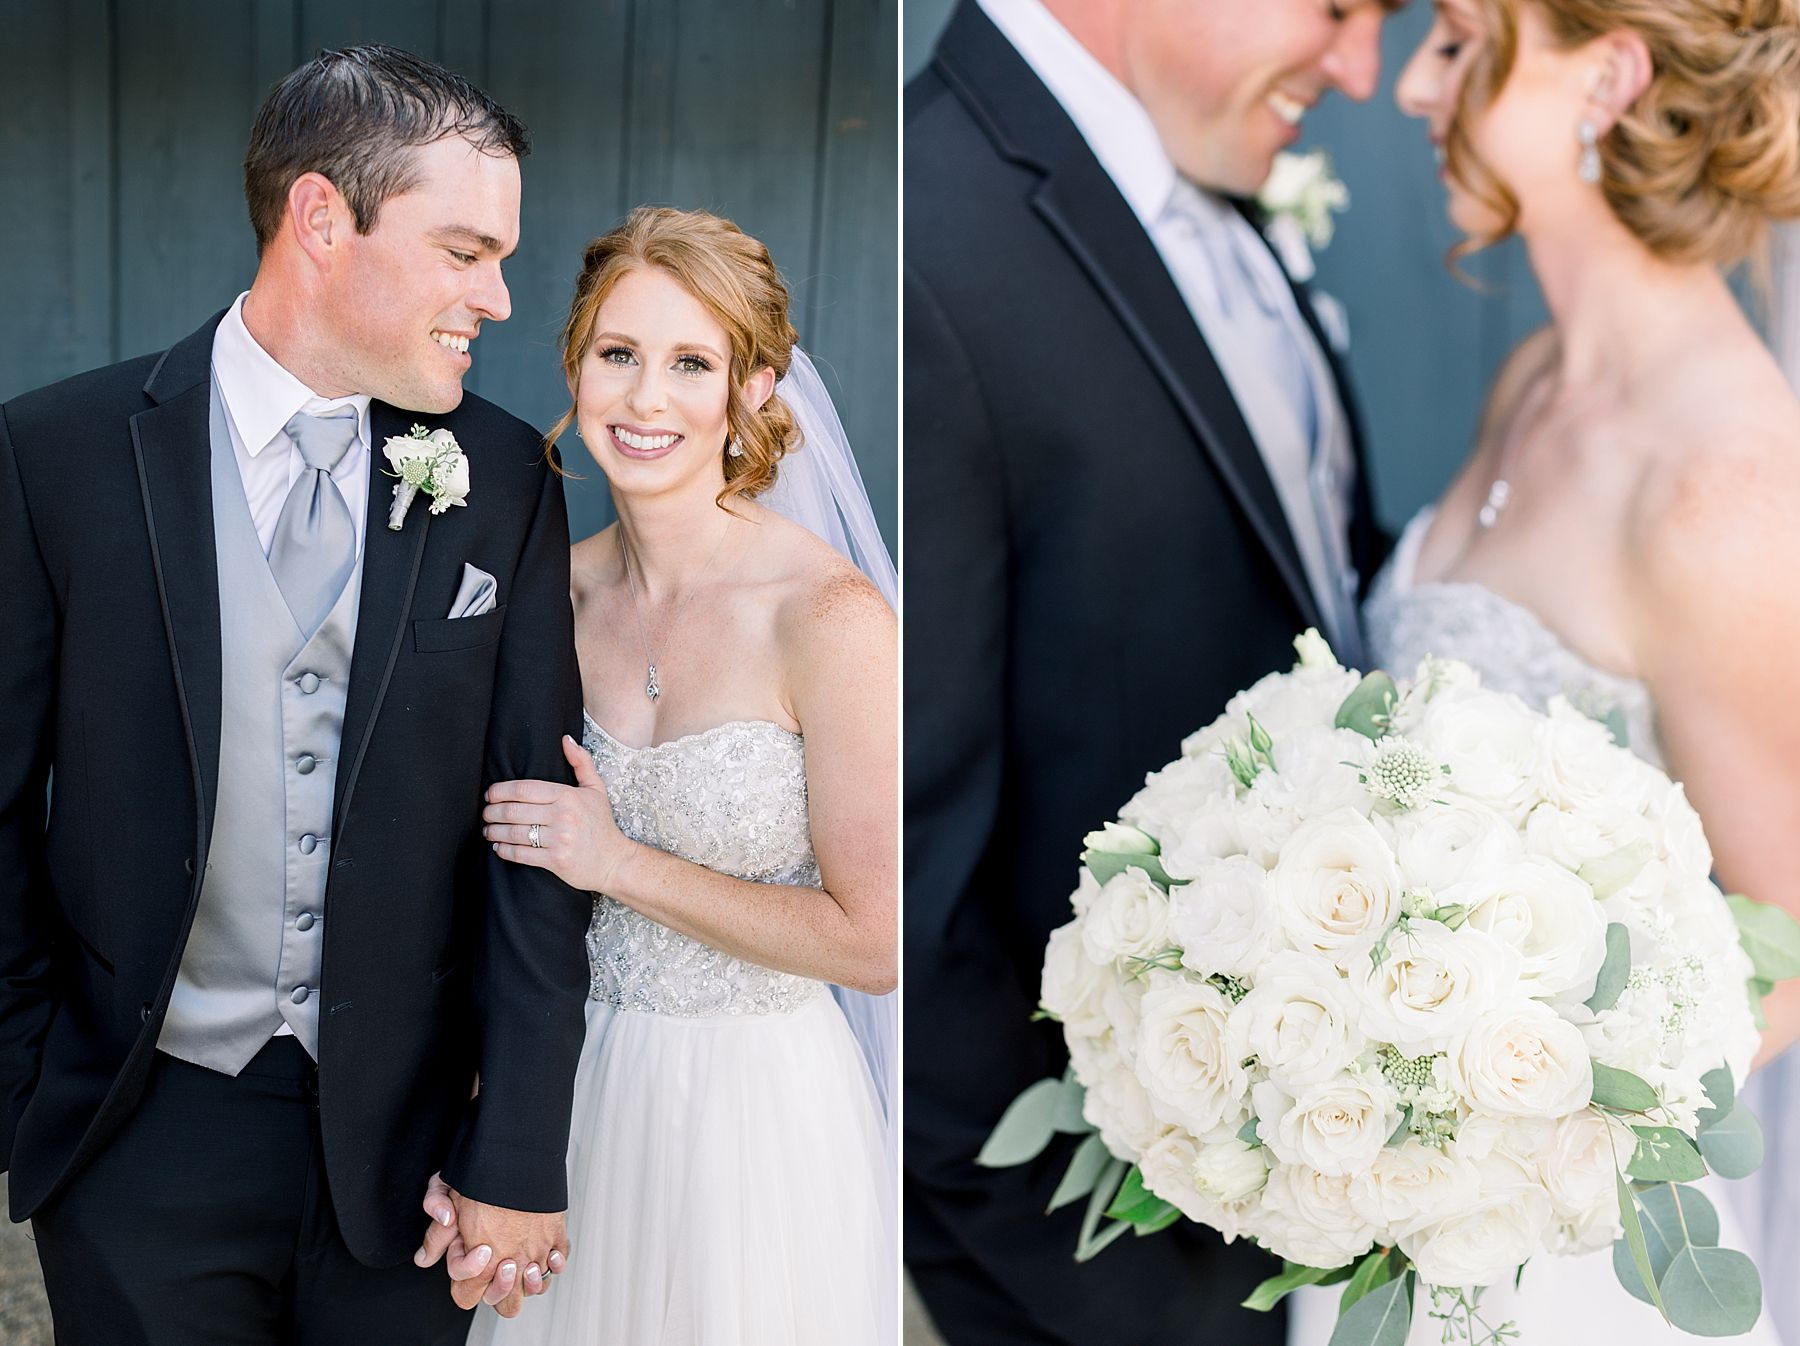 Wine and Roses Wedding - Wine and Roses Lodi Wedding Photographer - Sacramento Film Wedding Photographer - Ashley Baumgartner - Sacramento Luxury Wedding Photographer_0026.jpg